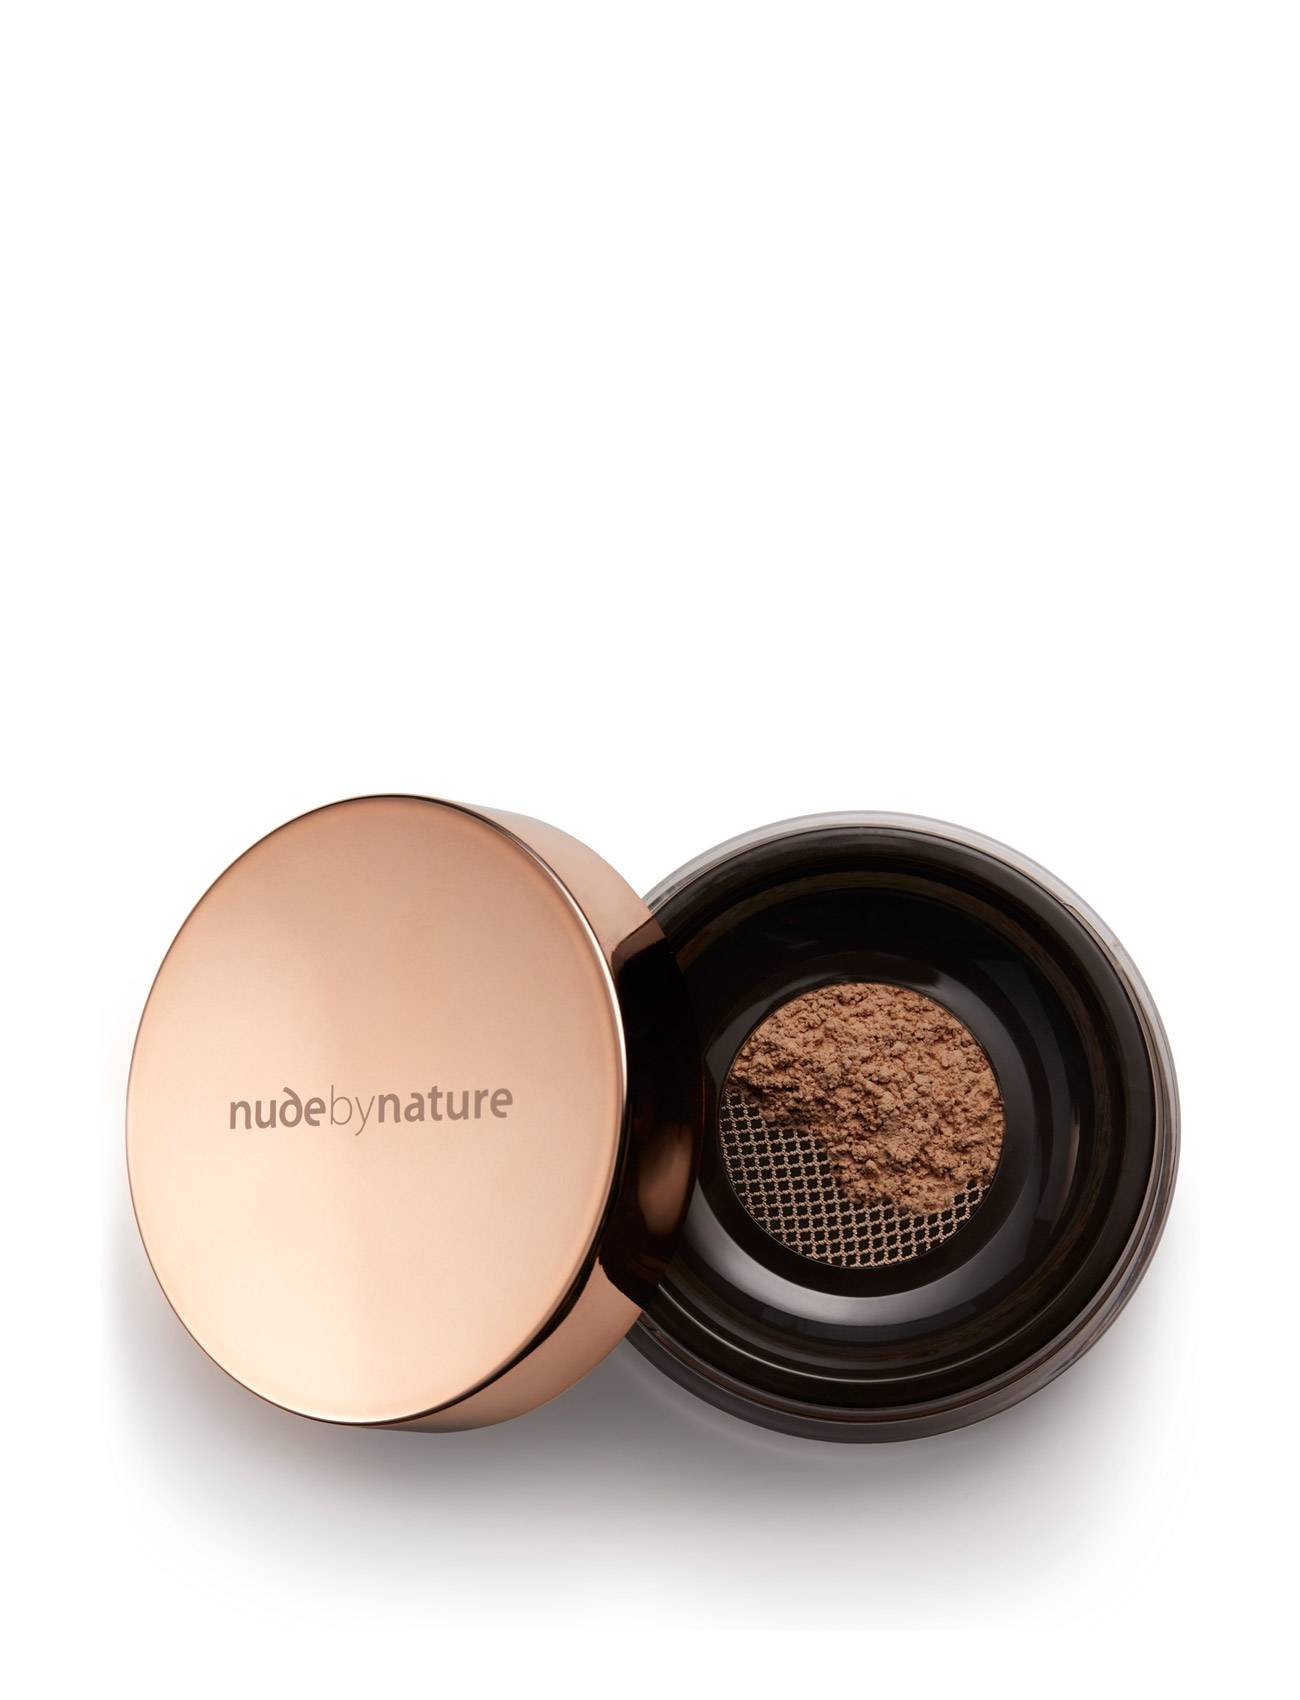 Nude by Nature Radiant Loose Powderfoundation N9 Sandy Brown